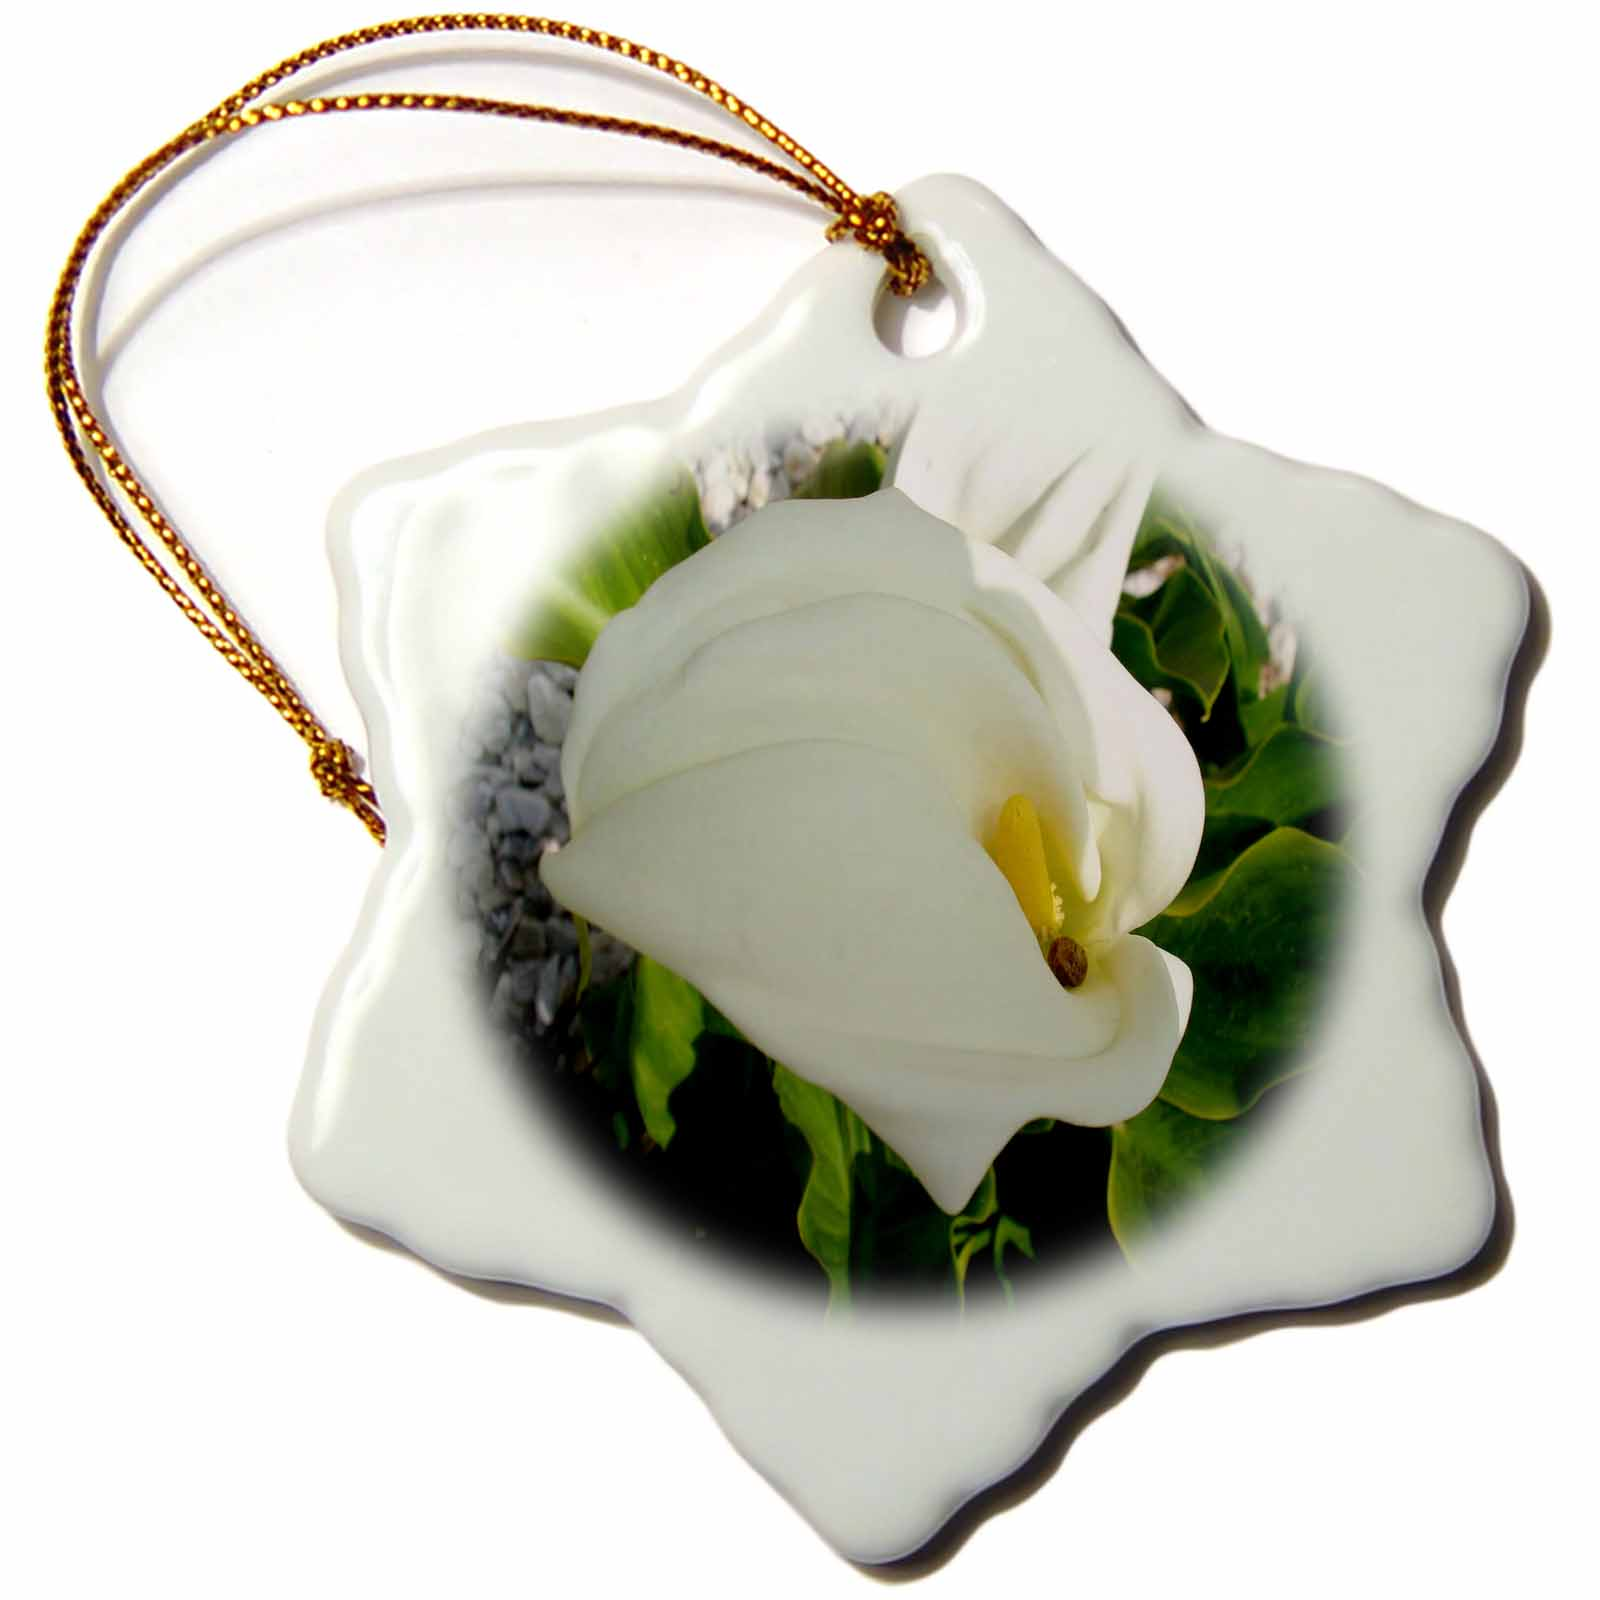 3dRose A Large Single White Calla Lily Flower-Beautiful calla lily flower, snail, Snowflake Ornament, Porcelain, 3-inch